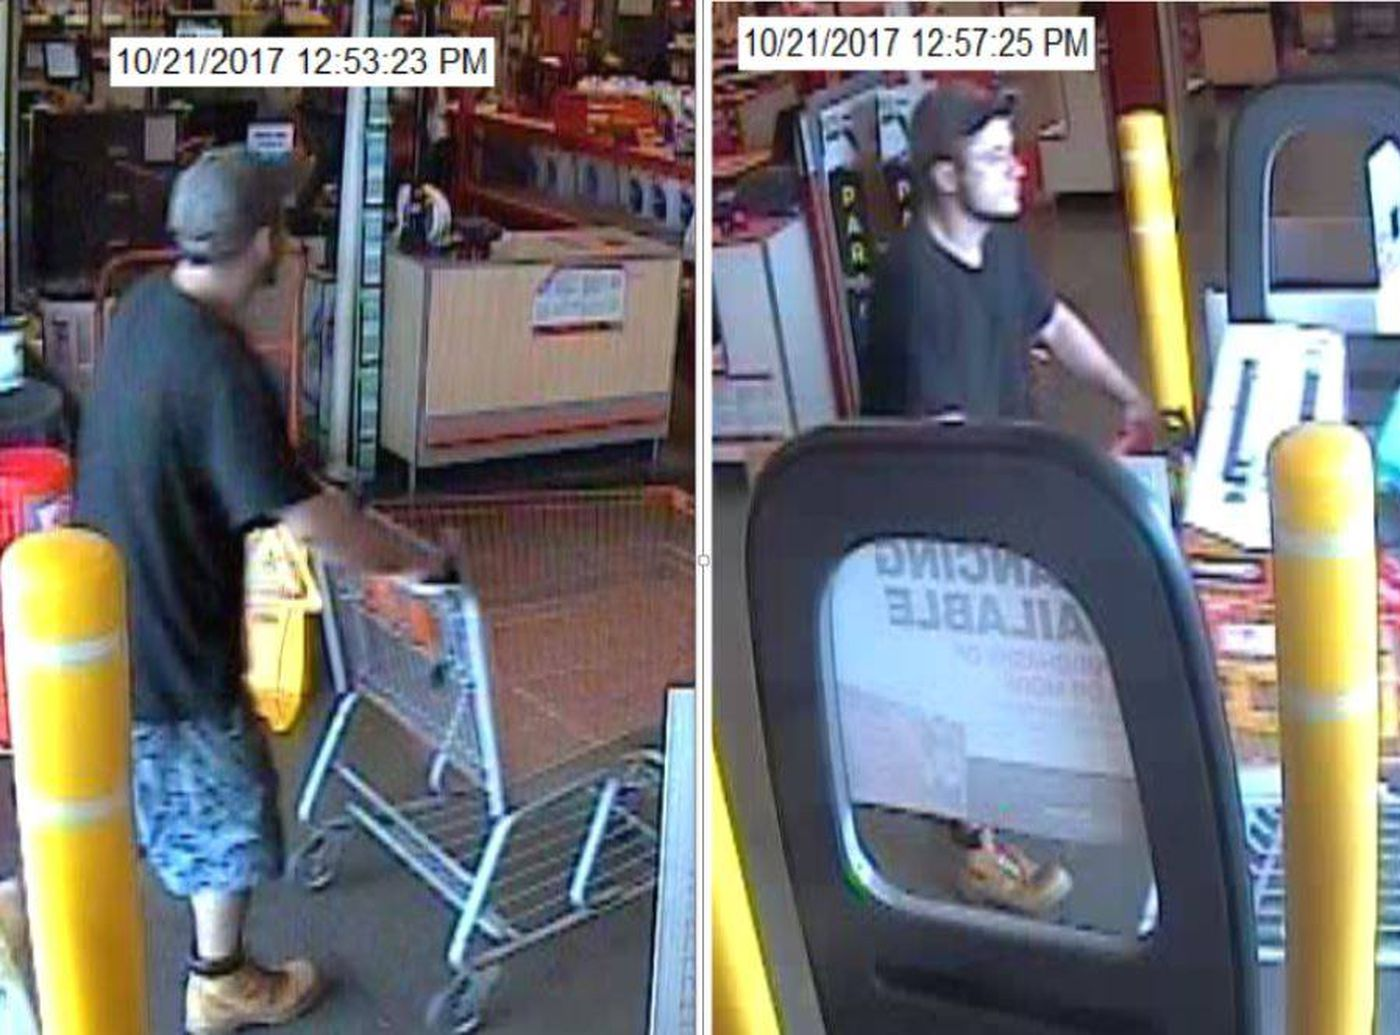 Police Search For Suspect In Theft From Home Depot In Al Ga